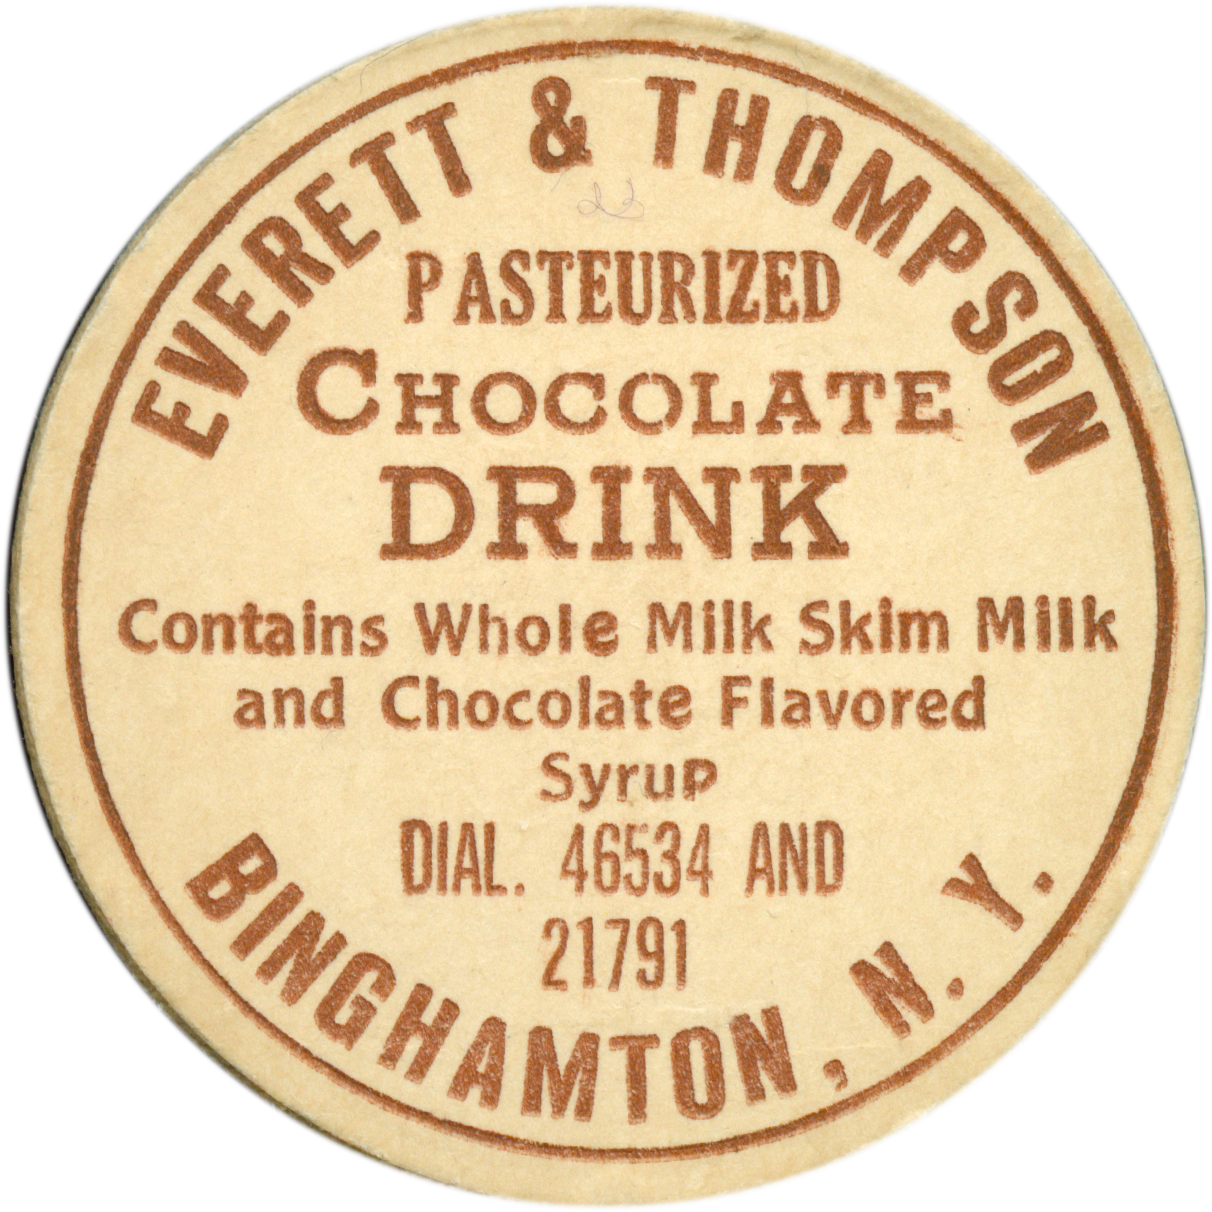 VernacularCircles_0001s_0015_Everett-&-Thompson---Pasterurized-Chocolate-Drink.png